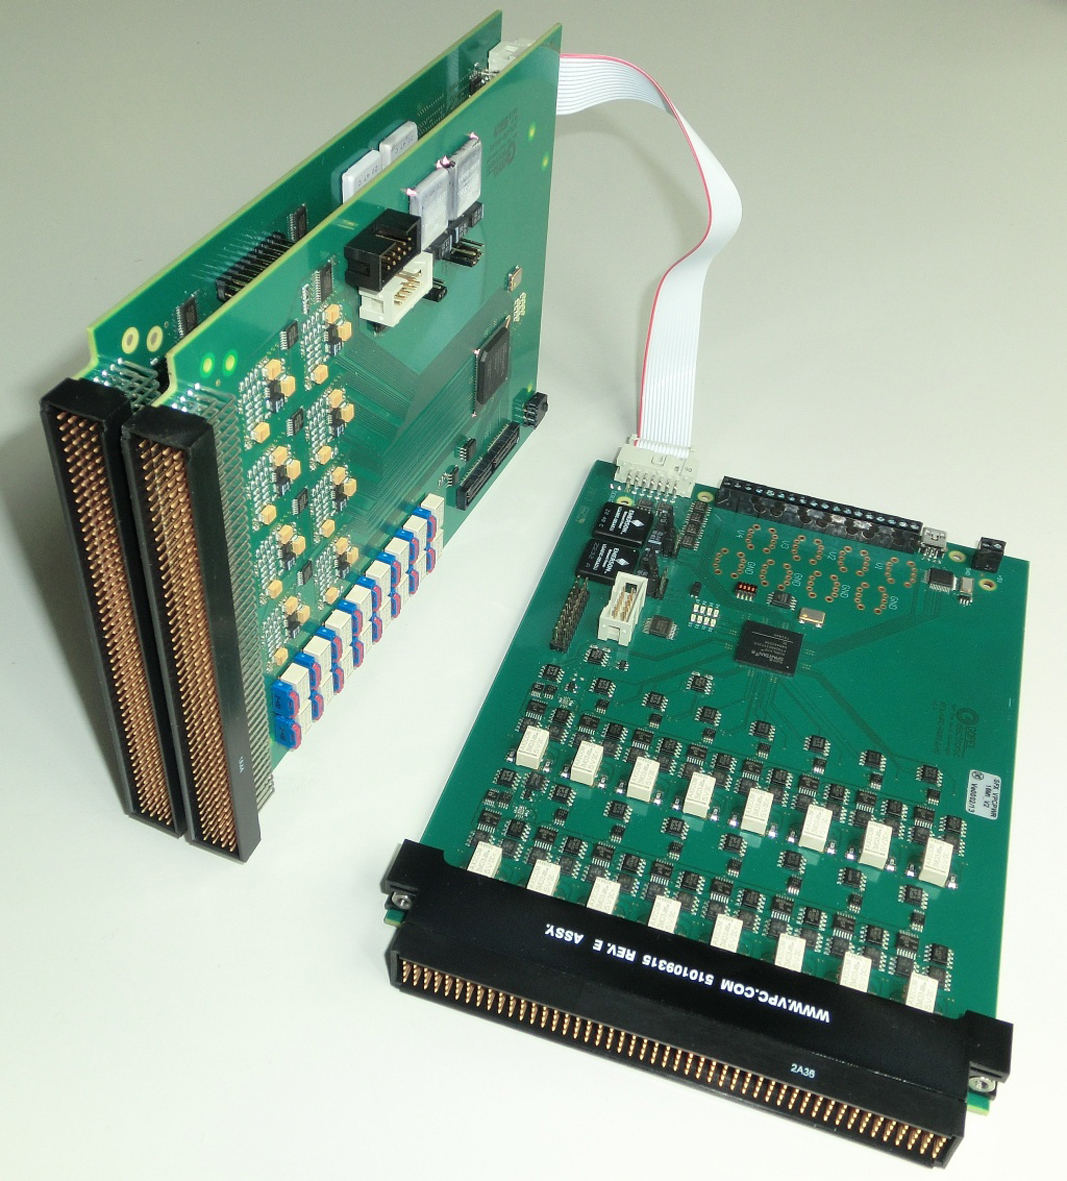 New Module Kit for parallel Test and Programming in Gang Applications